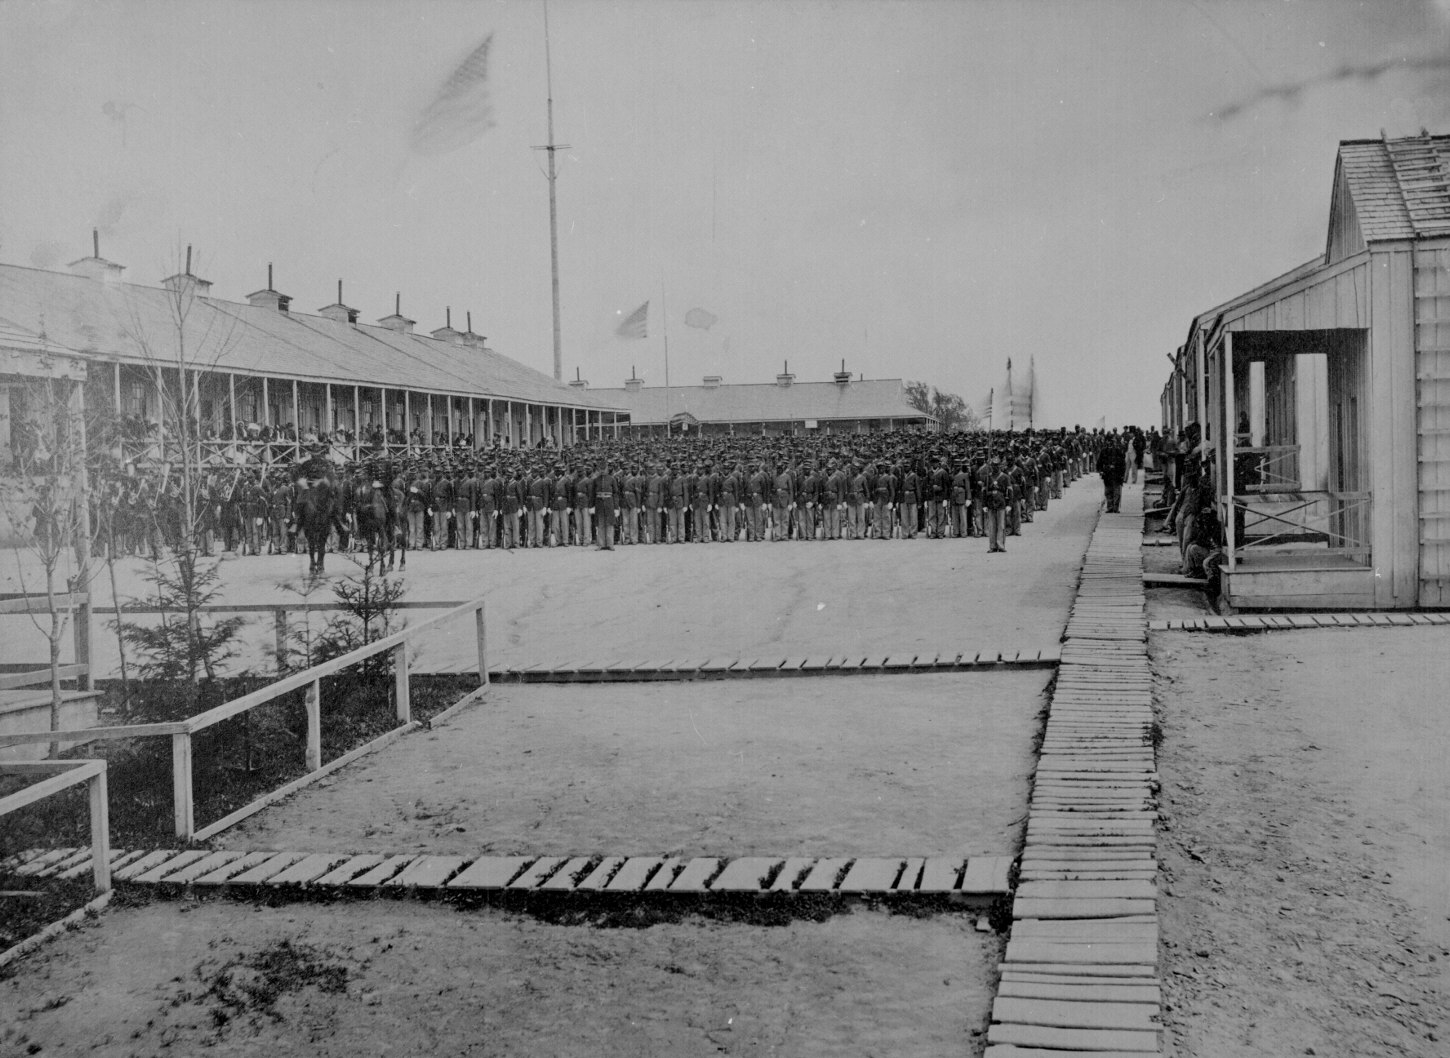 26th USC in formation at Camp William Penn